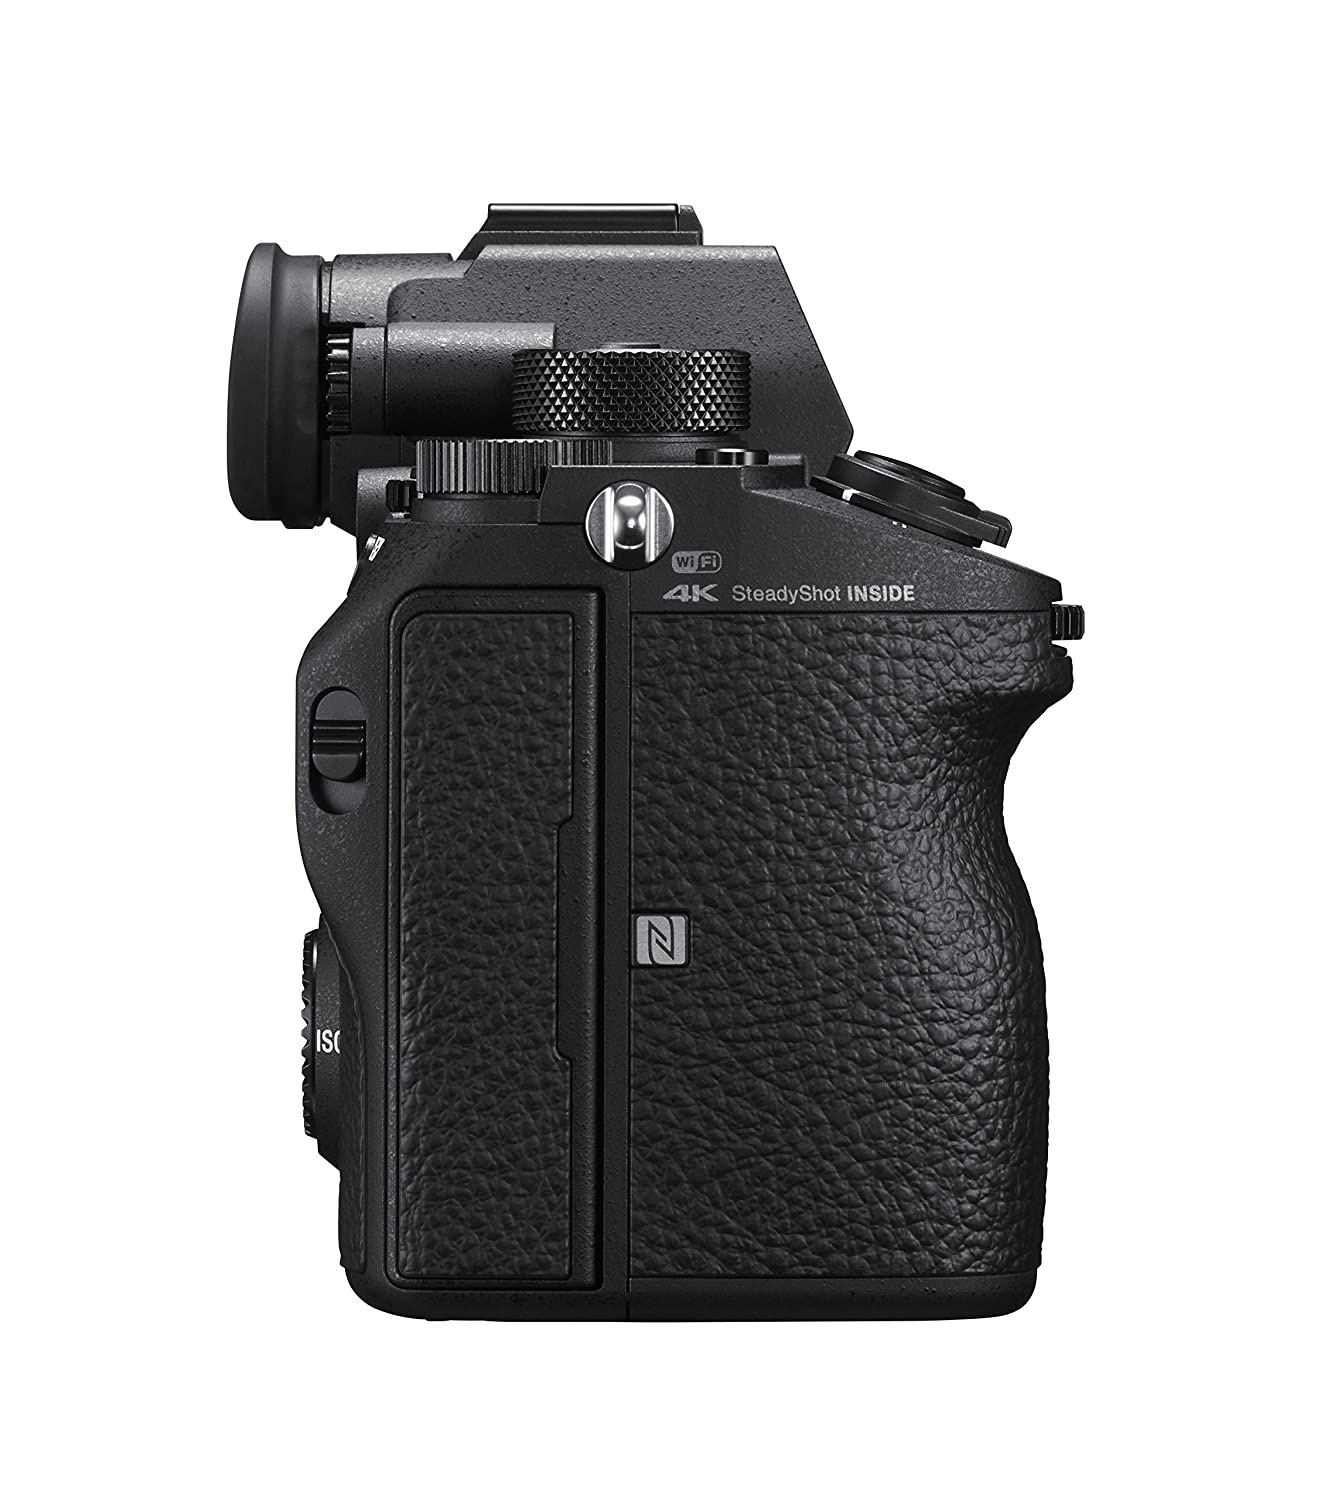 Daftar Harga Bundle 10pcs Steam Wallet Idr 400000 Update 2018 Ceviro Kyukei Clutch For Man And Woman Sony A9 Full Frame Mirrorless Interchangeable Lens Camera Body Only